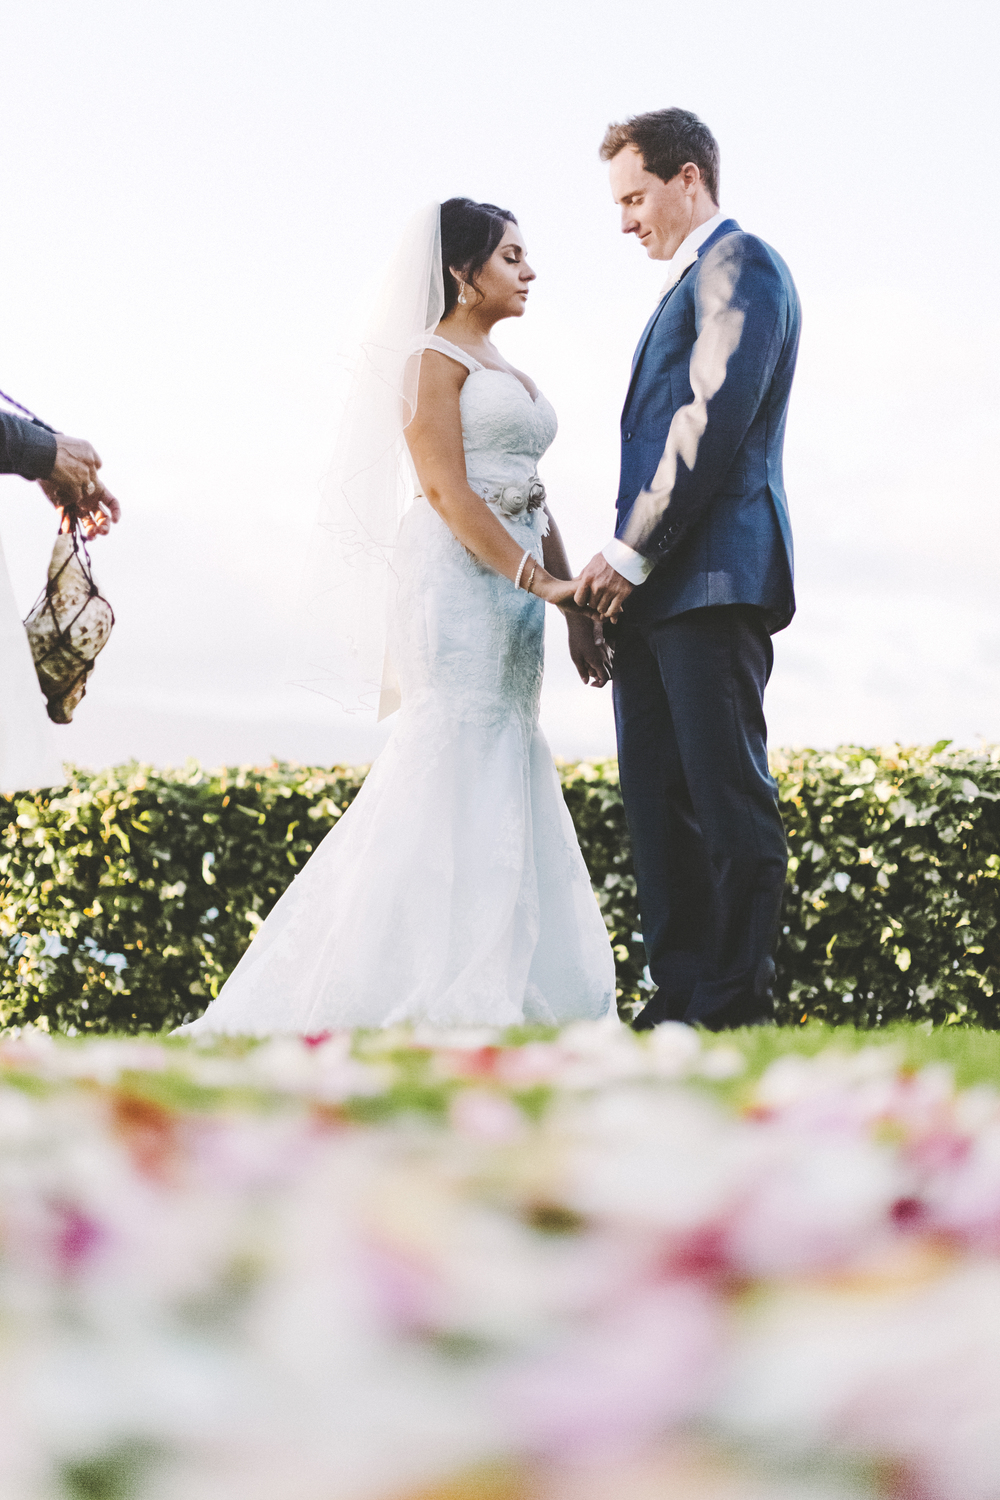 angie-diaz-photography-maui-hawaii-wedding-9.jpg